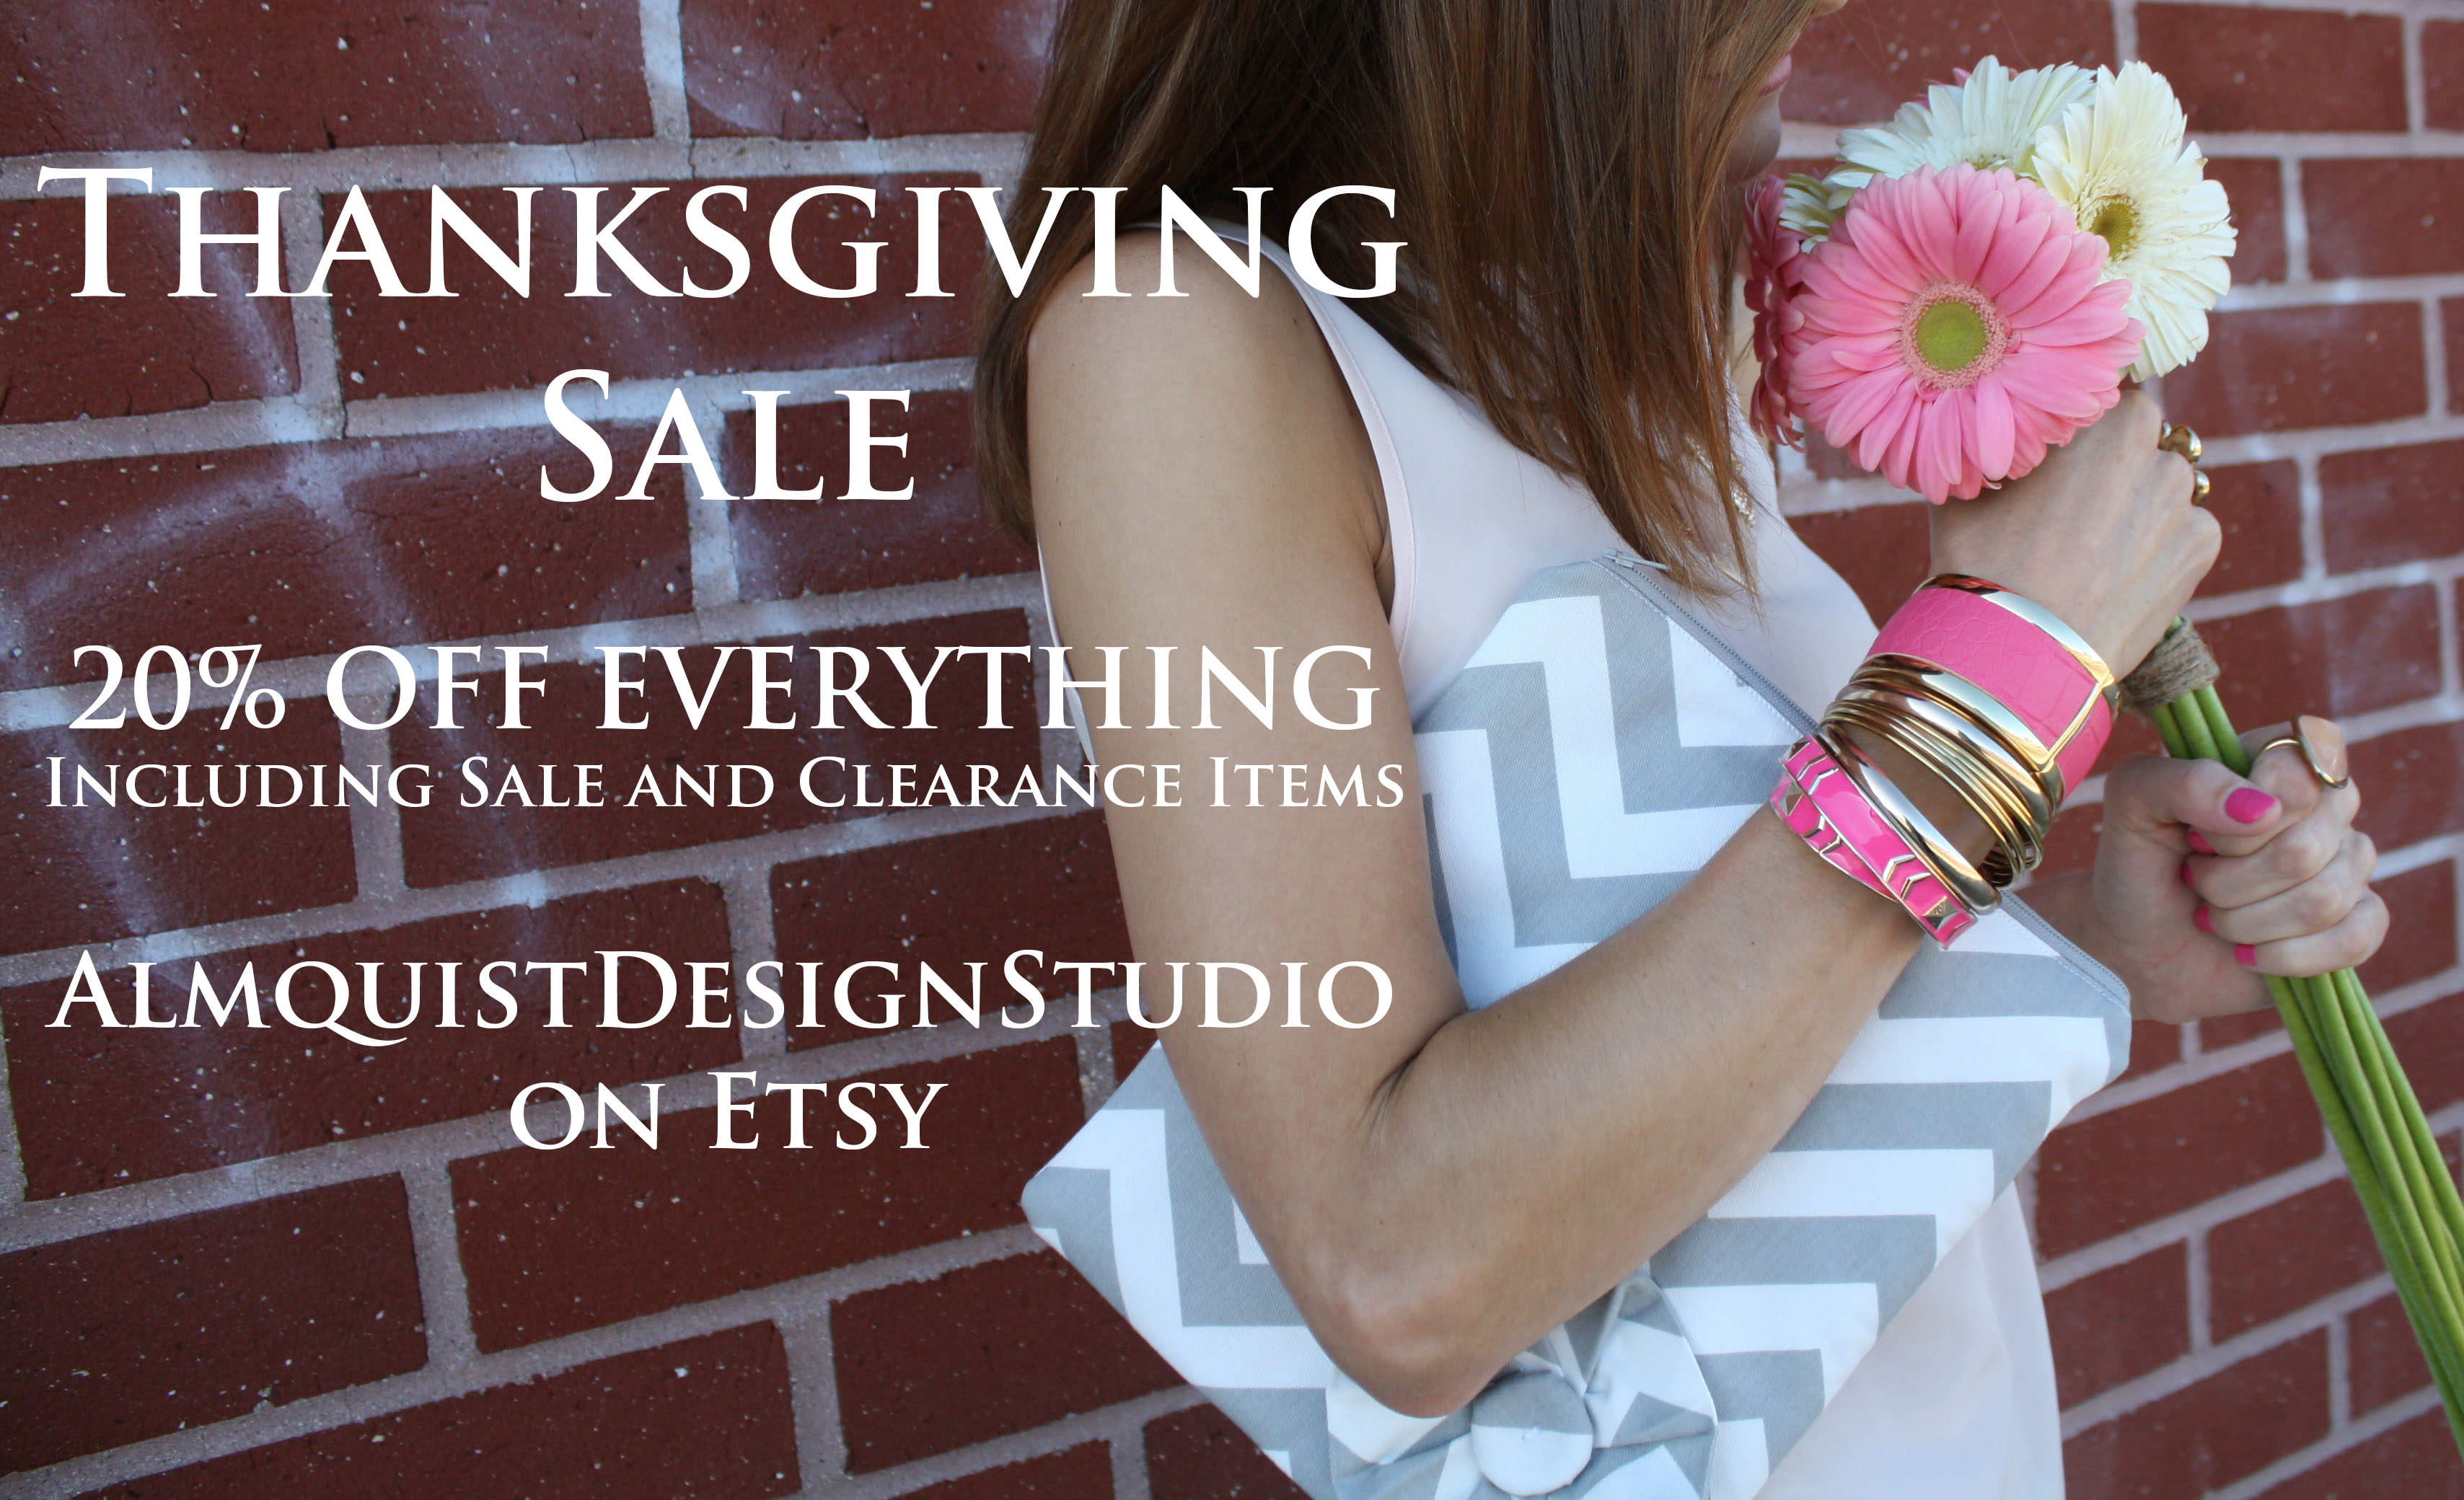 Our Thanksgiving Sale continues at AlmquistDesignStudio! Find us on Etsy!